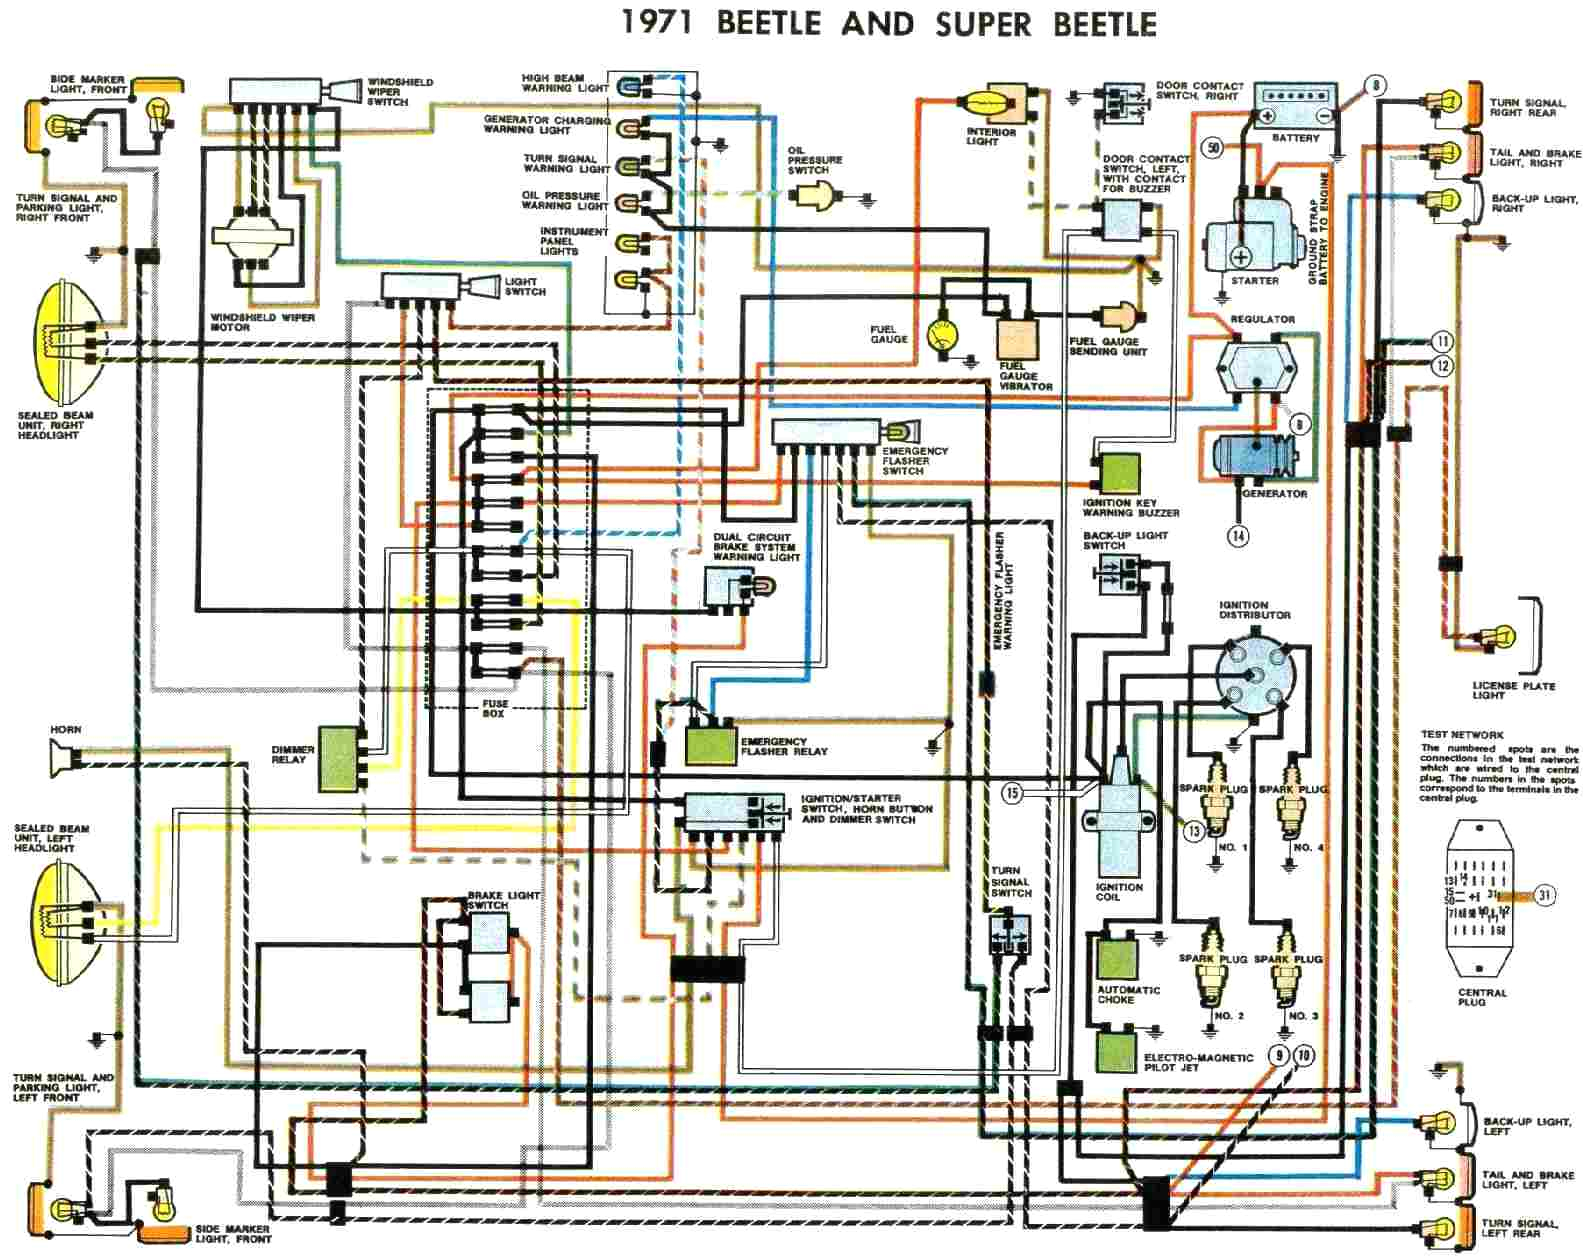 vw touran wiring diagram blog wiring diagram vw touran fuse diagram wiring diagrams for vw touran